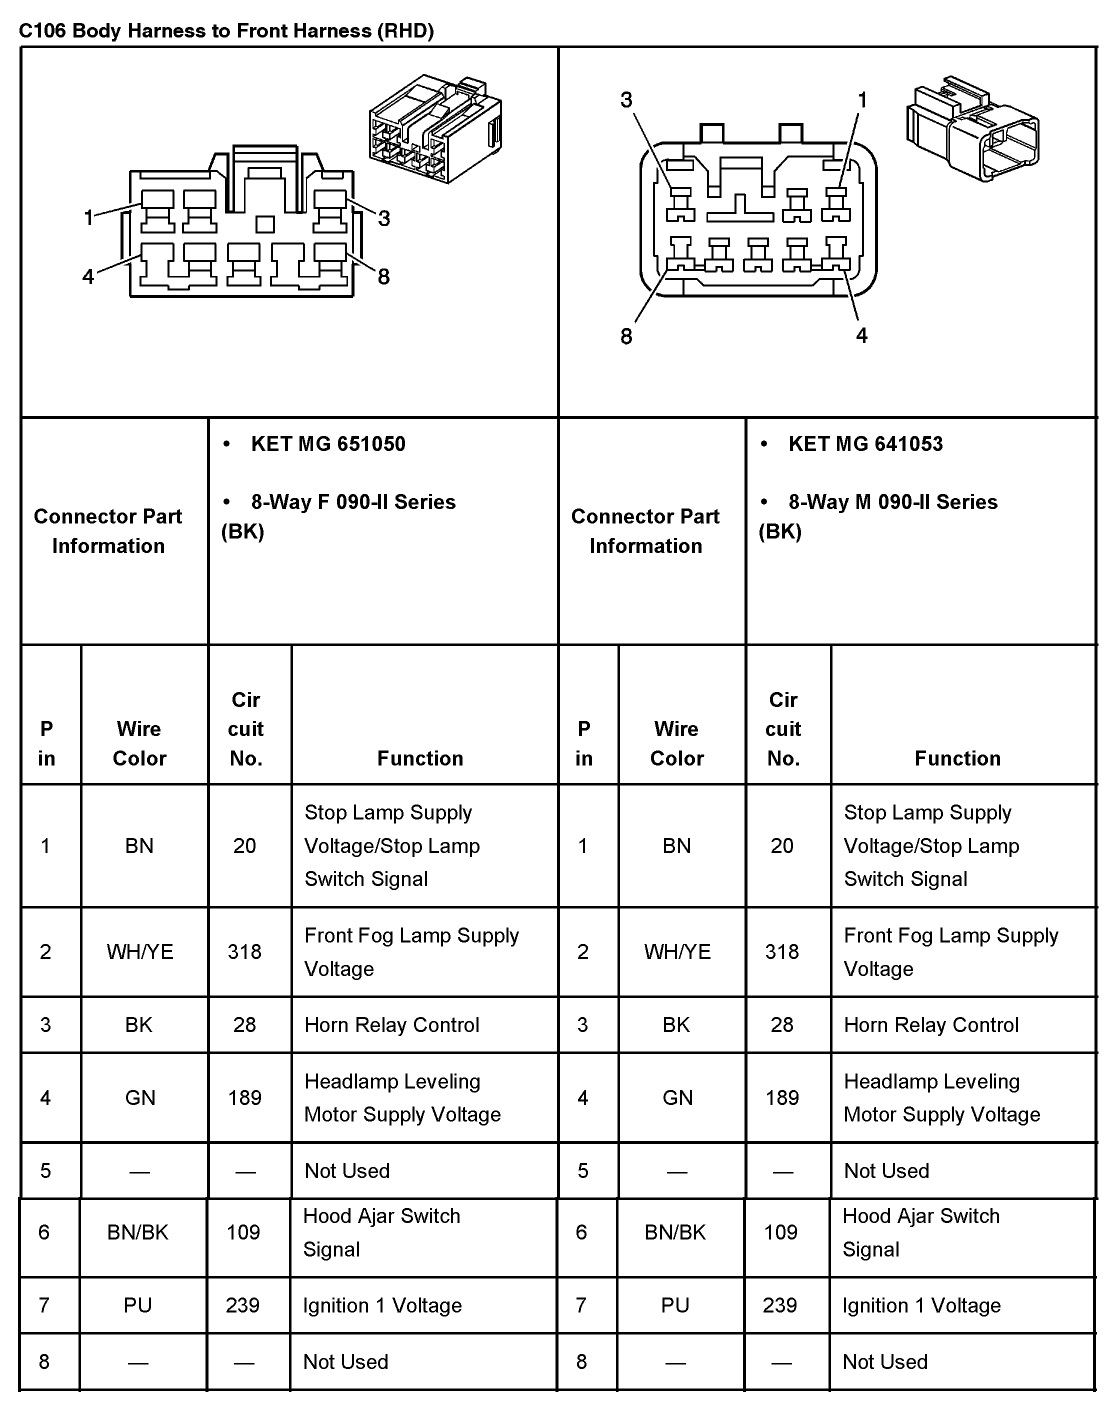 7331d1383704576 2005 aveo master connector list diagrams conn3 jpg 2005 aveo master connector list and diagrams 2006 chevy aveo fuse box location at edmiracle.co